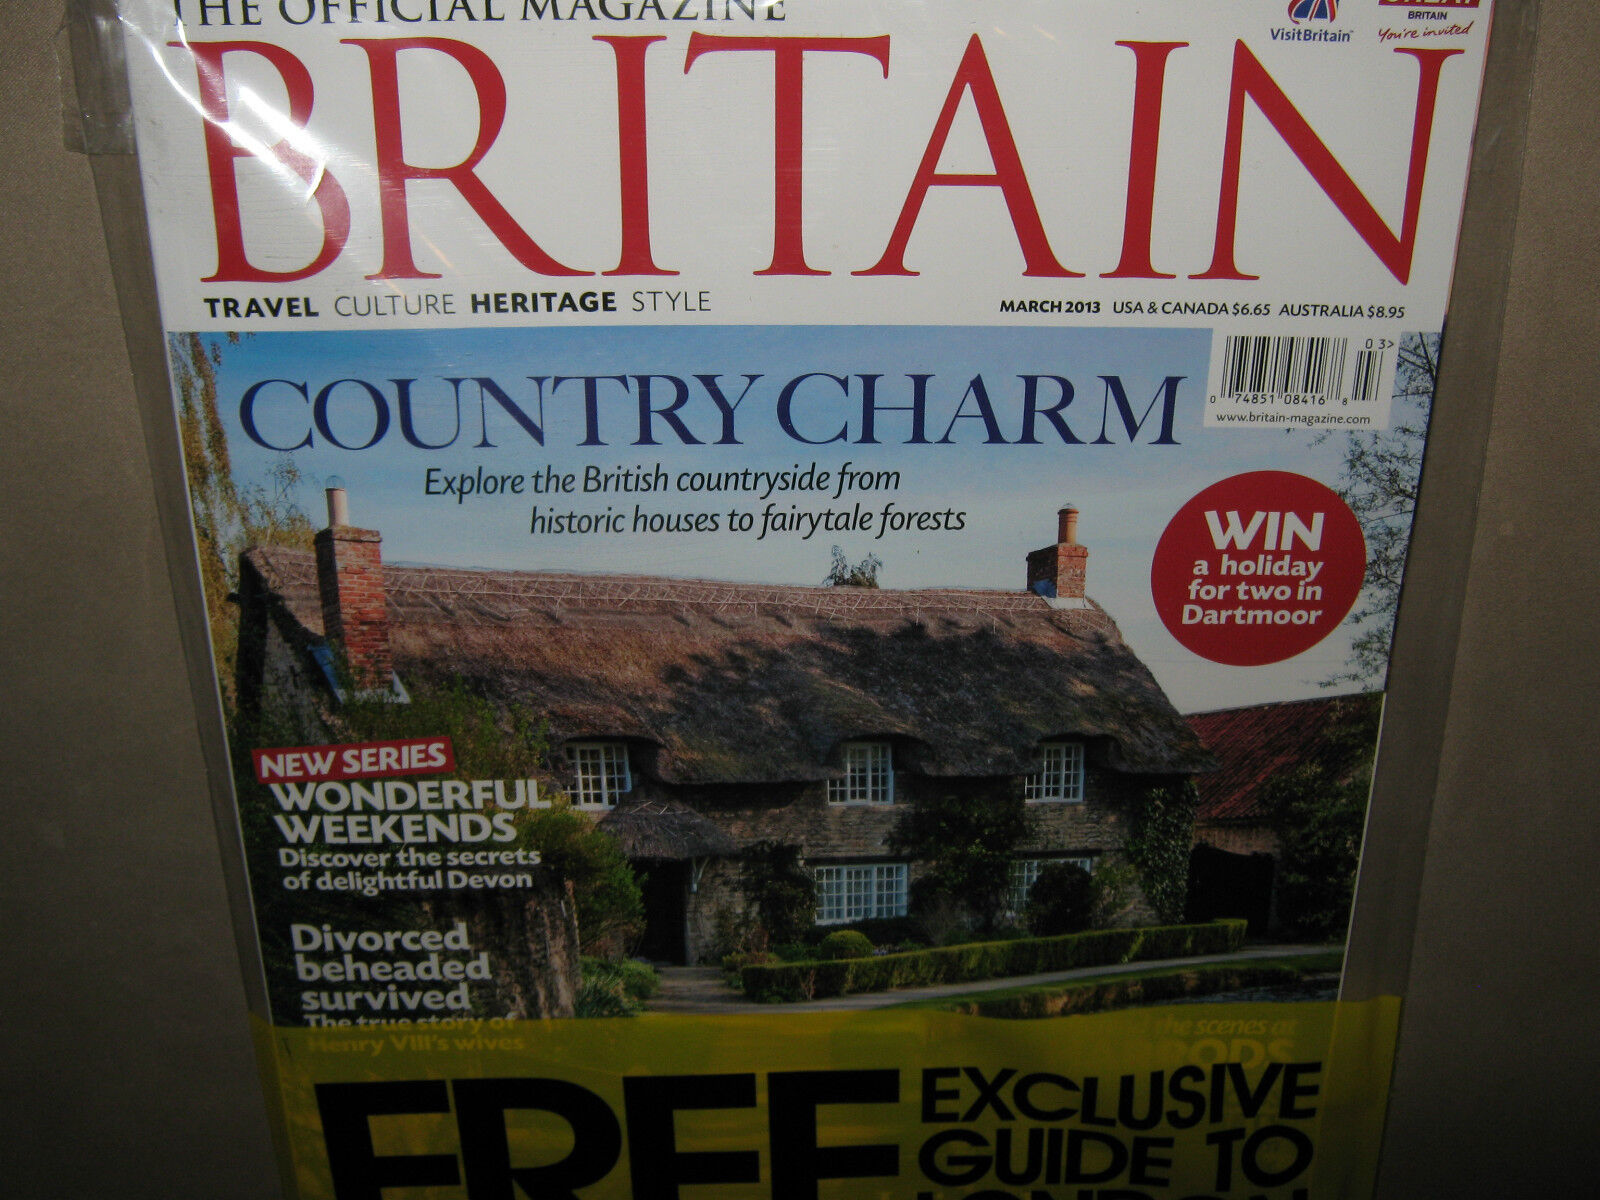 NEW! BRITAIN The Official Magazine March 2013 Free GUIDE to LONDON UK Travel